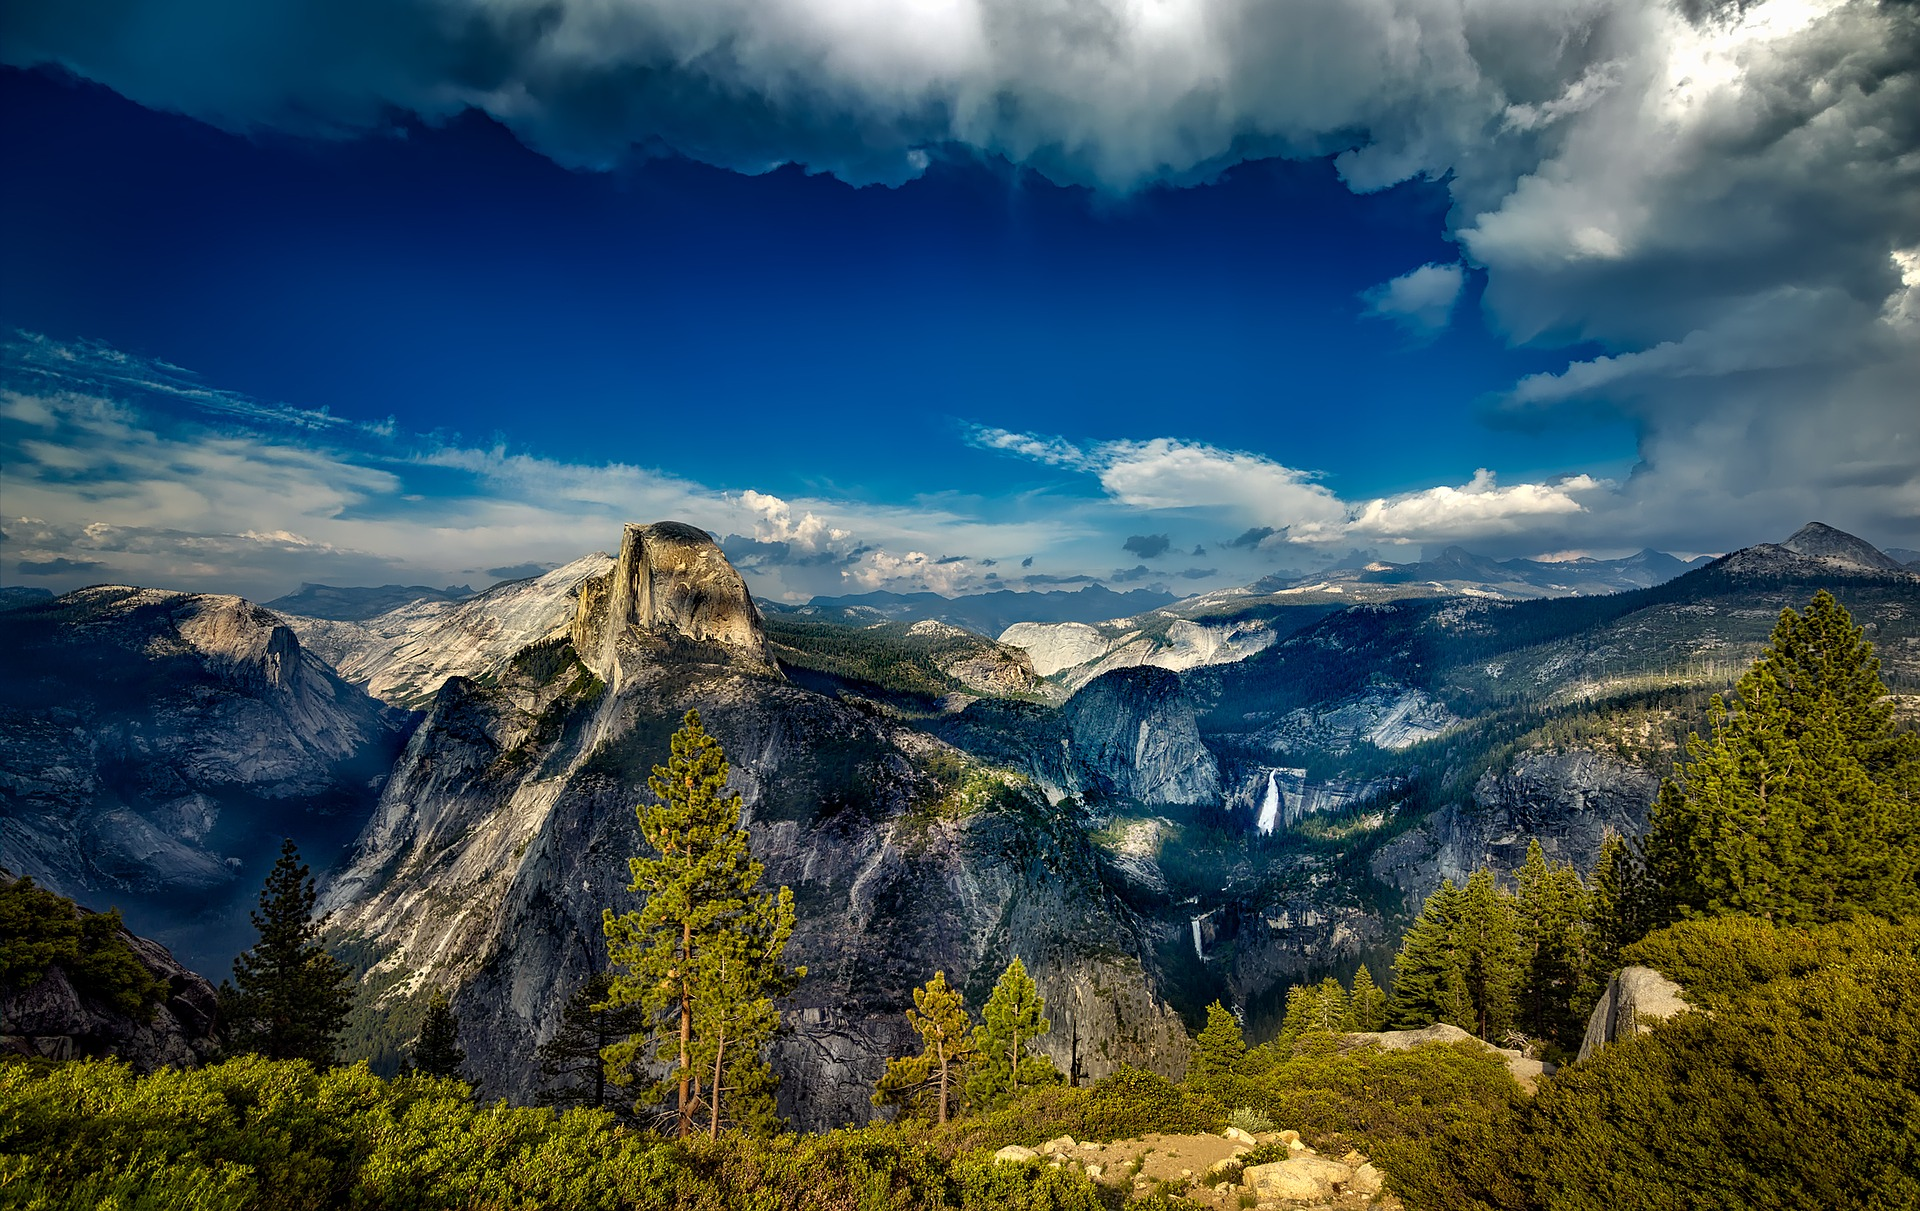 Yosemite National Park - California, USA